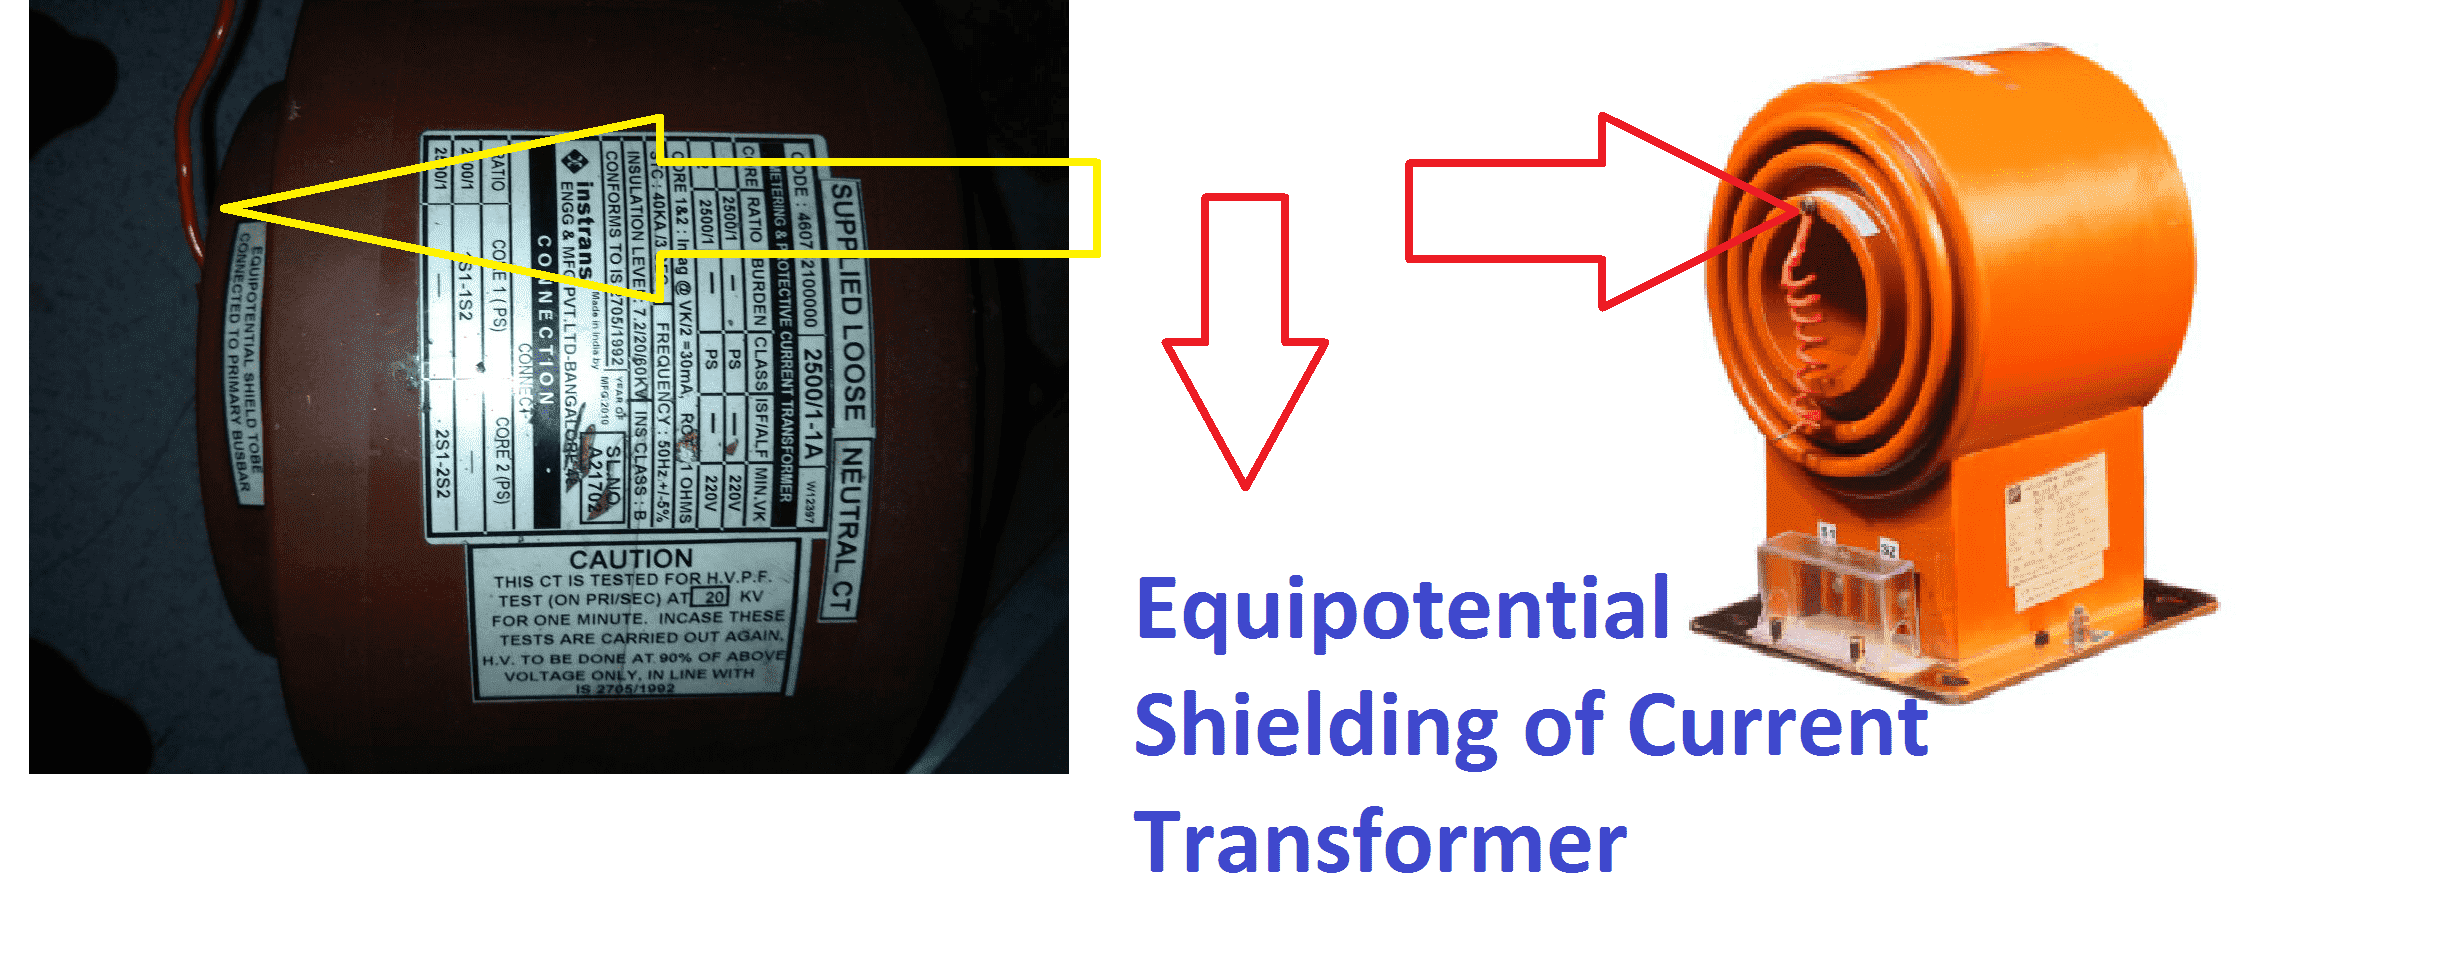 Equipotential shielding